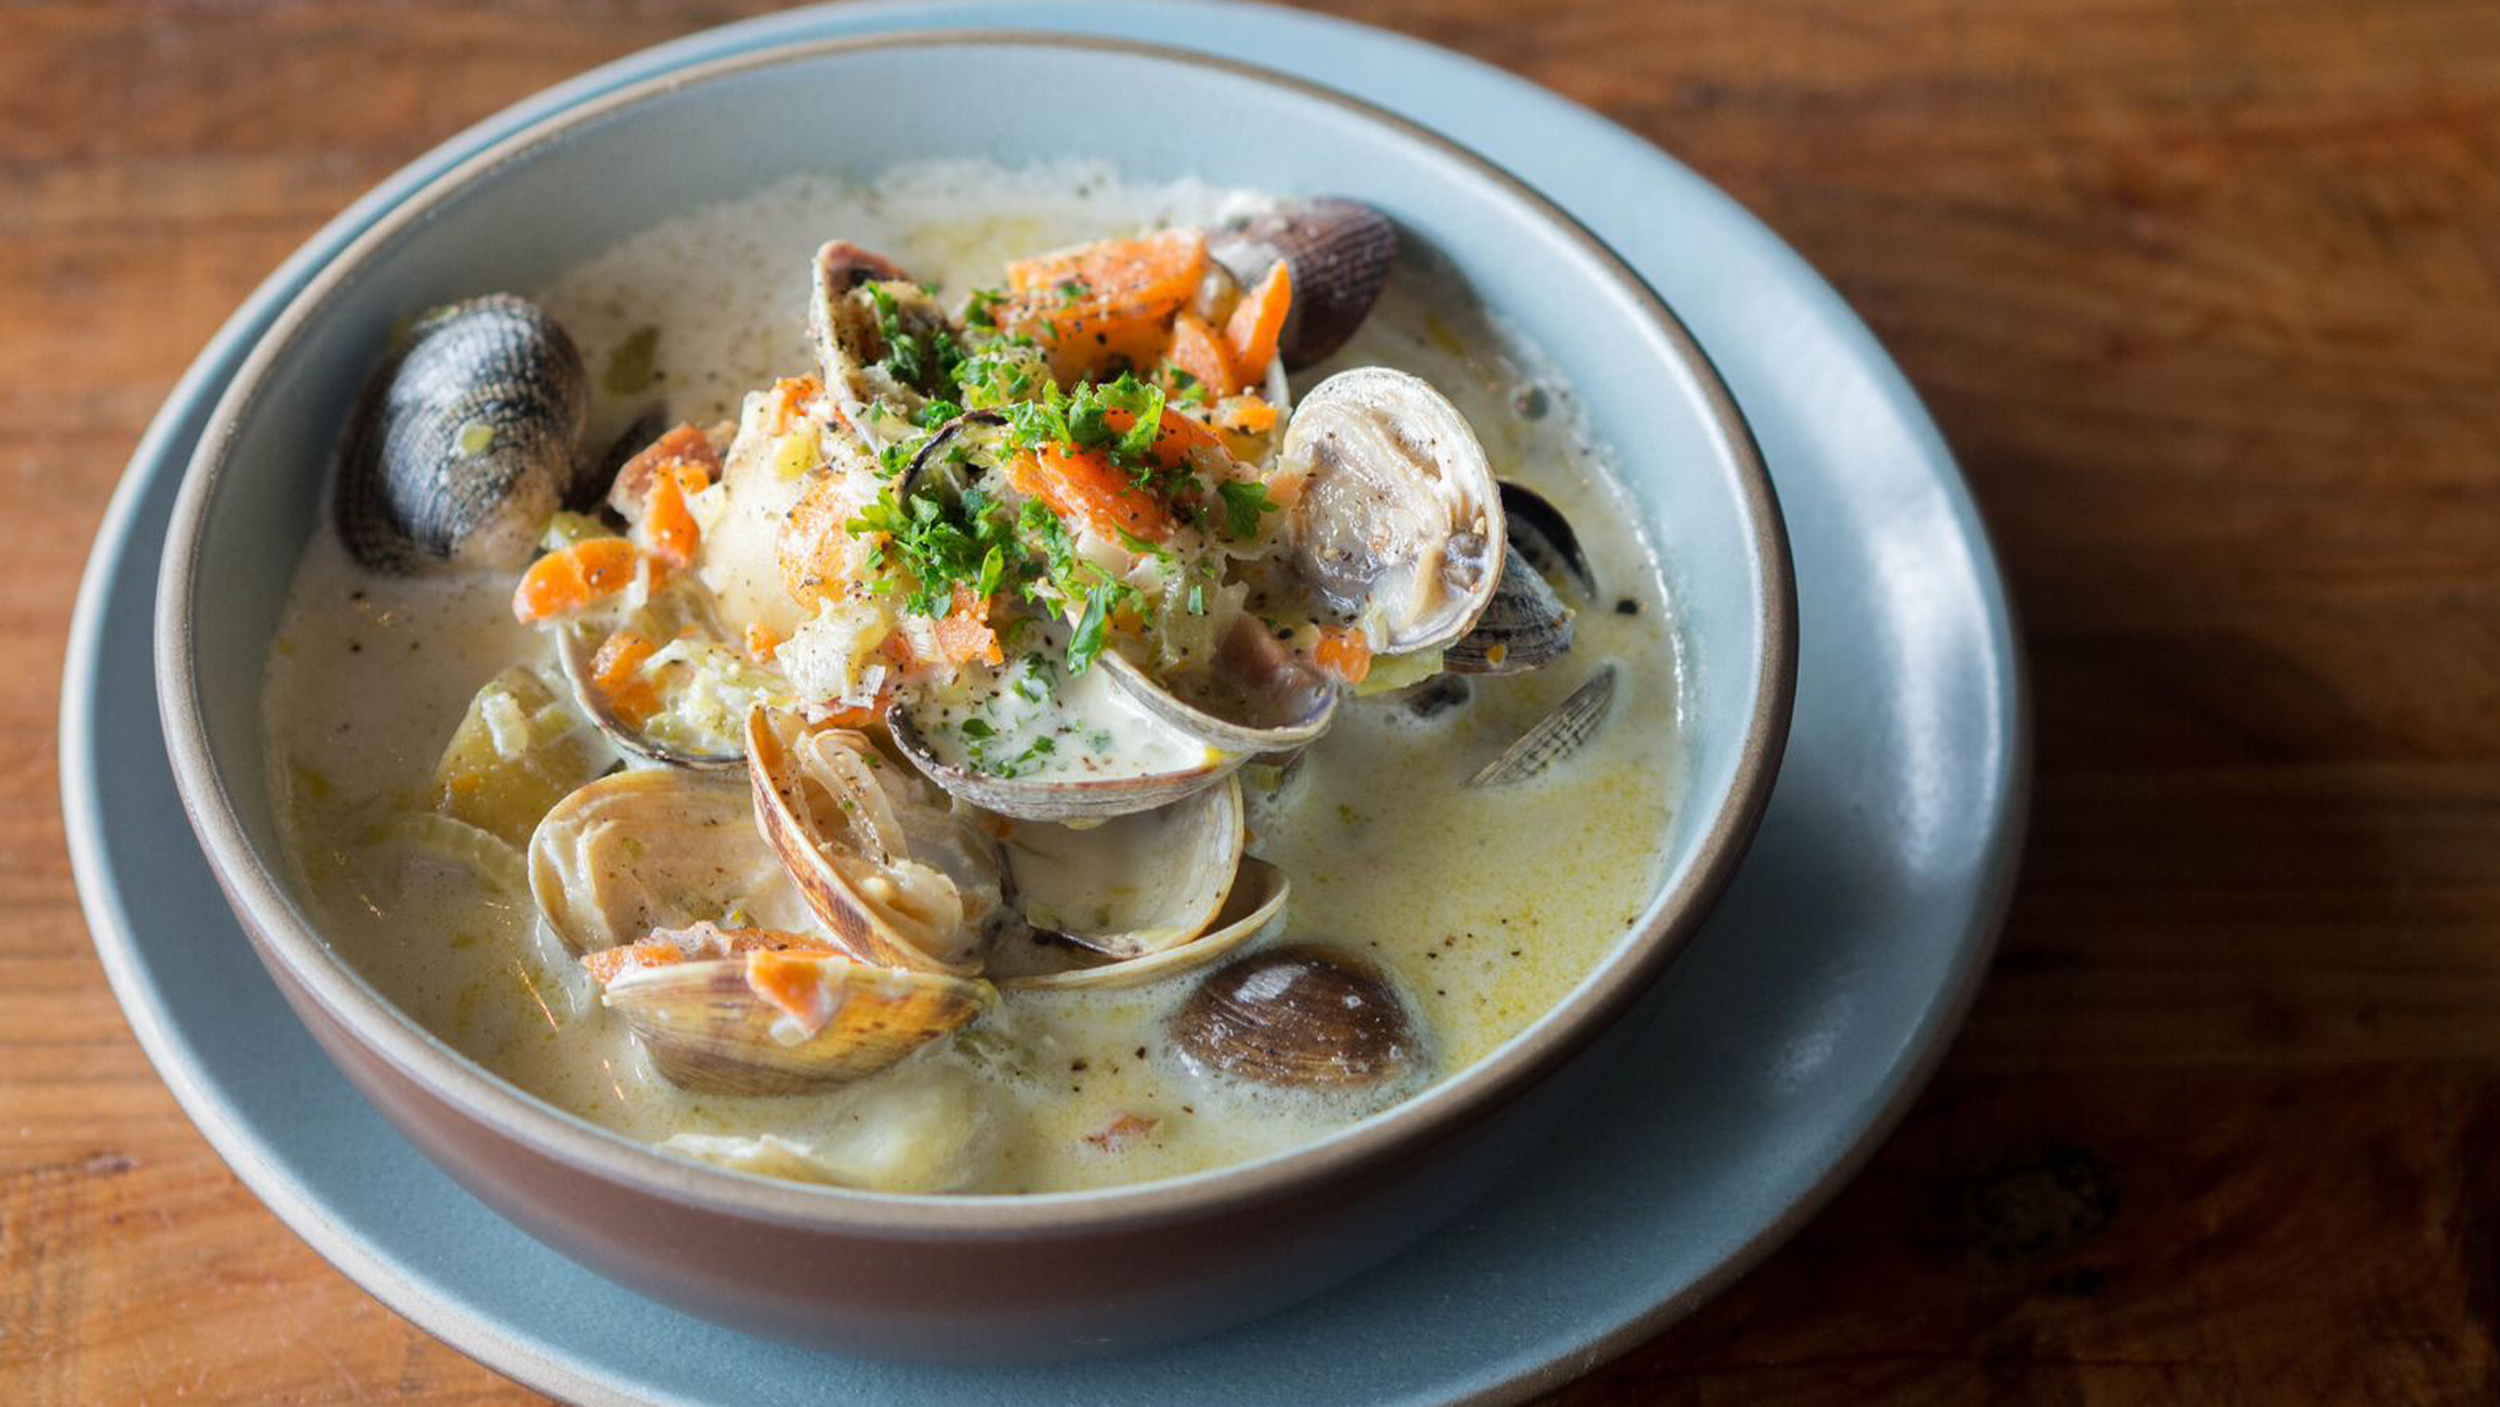 The best clam chowder recipe, inspired by San Francisco ...